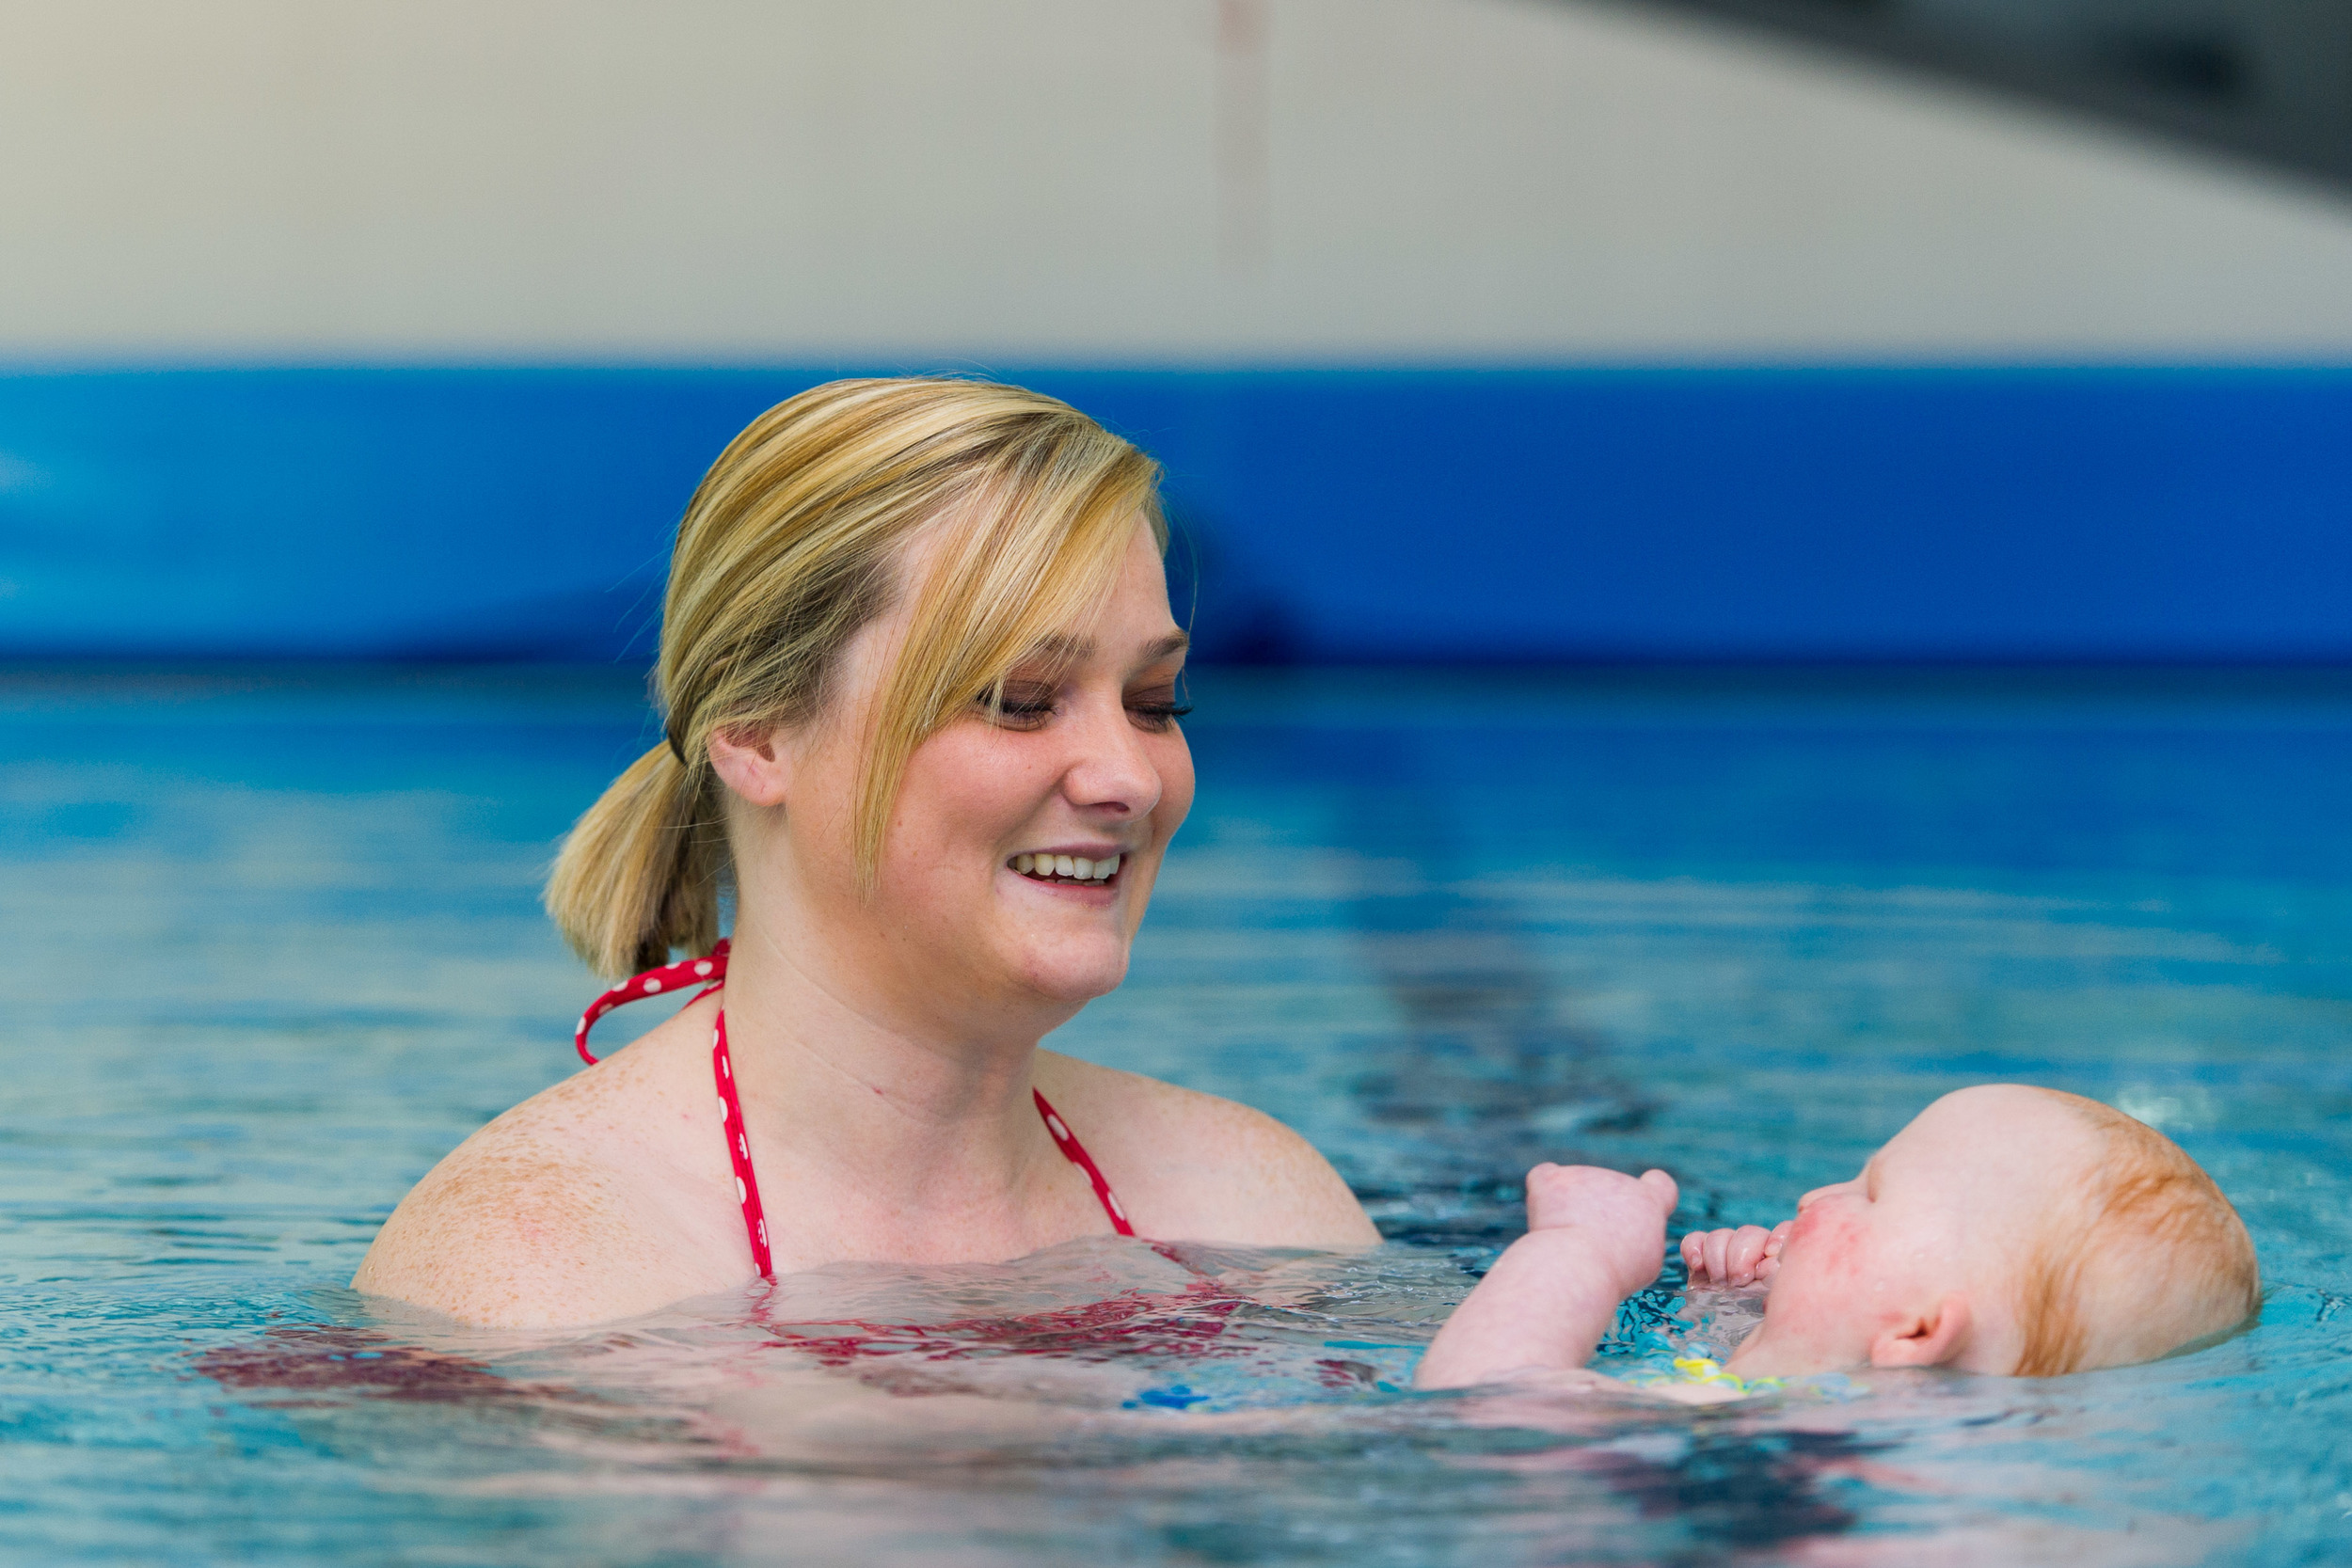 Danielle Davis and Daisy Smith swimming in Serennu Children's Centre, Newport. Daisy has anophthalmia, a rare condition that means she was born without eyes. She enjoys swimming and goes every week.